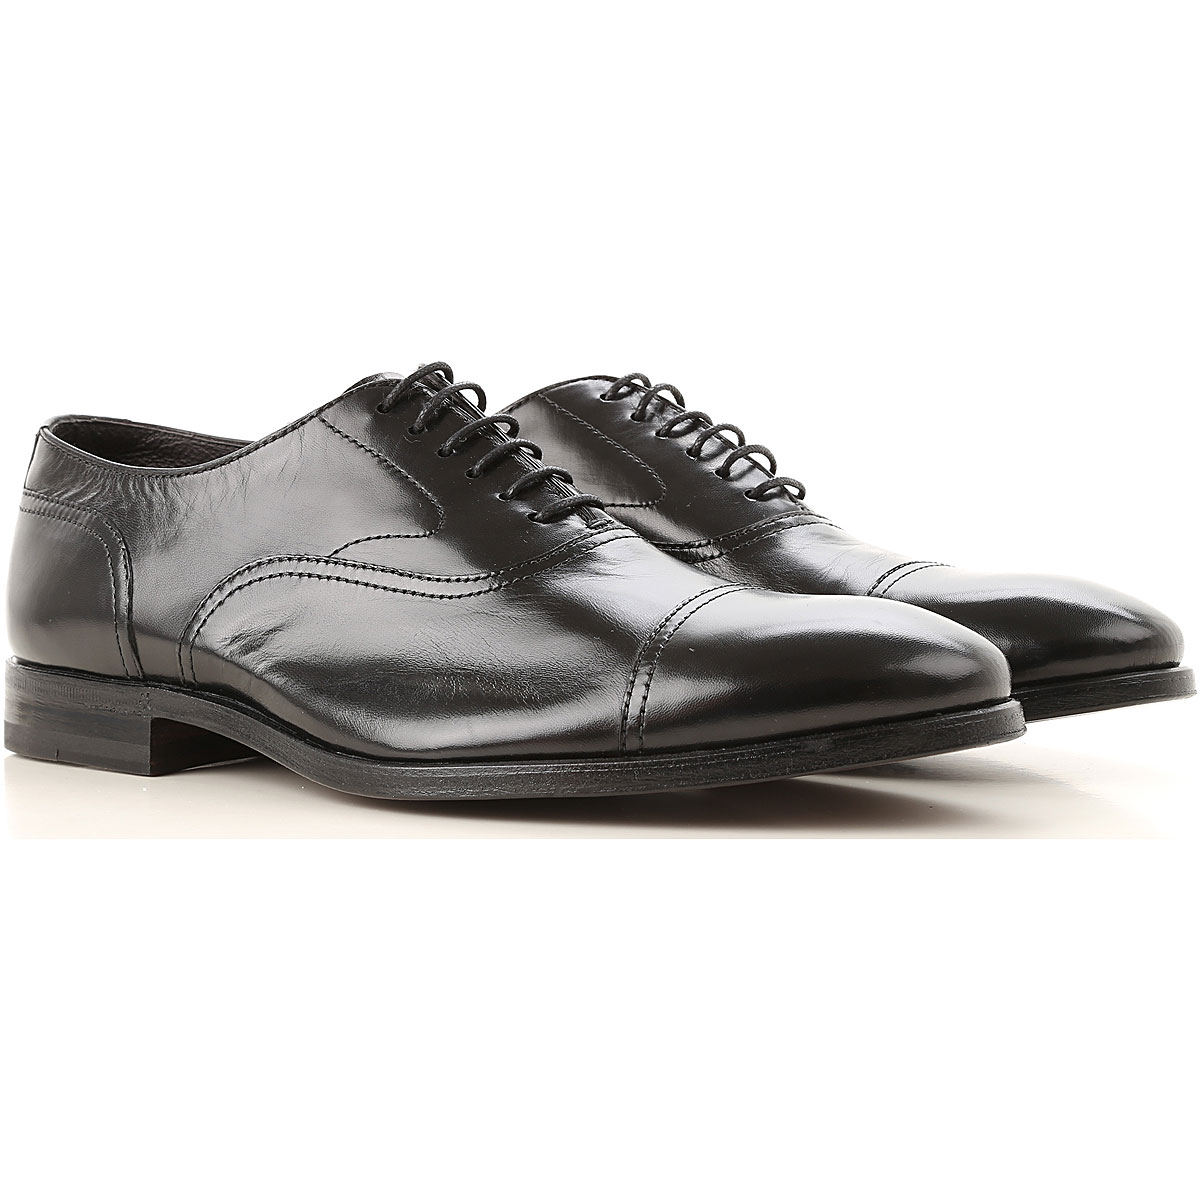 Henderson Lace Up Shoes for Men Oxfords, Derbies and Brogues On Sale, Black, Leather, 2019, 10 10.5 11 11.5 7 7.5 8 9